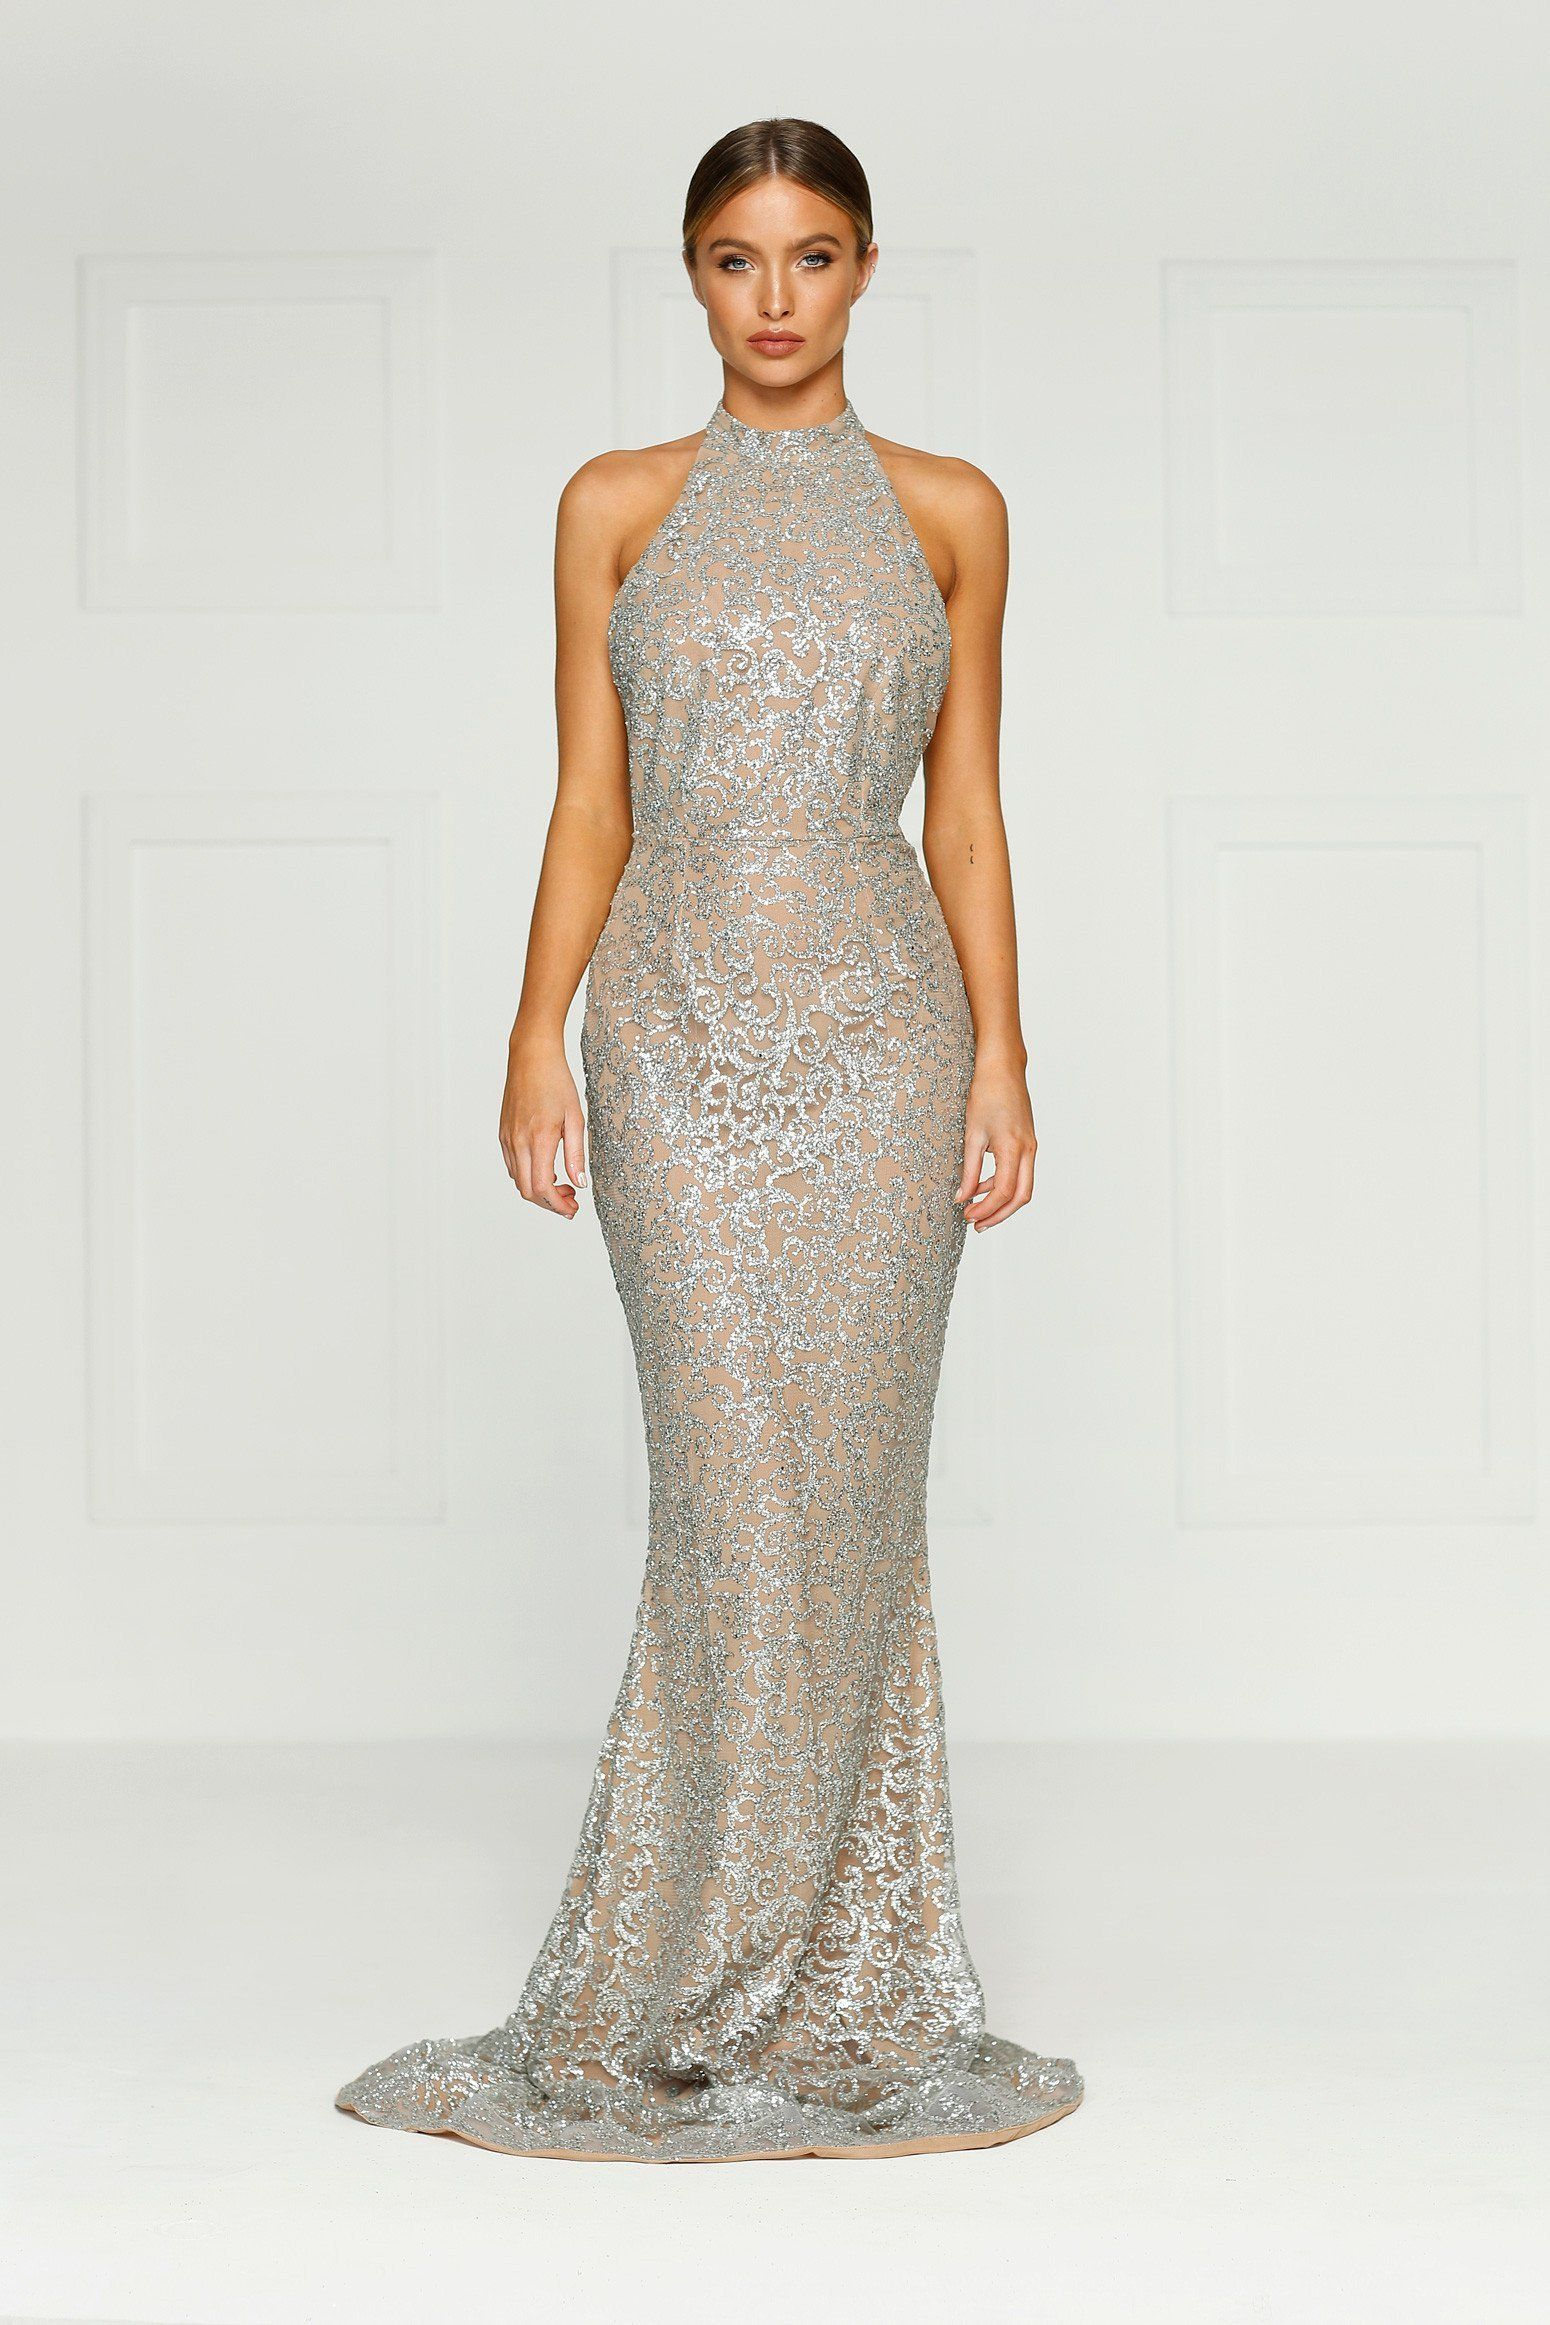 7dc4447e778 Leilani Glitter Gown - Silver in 2019 | Fashion | Bridesmaid dresses ...